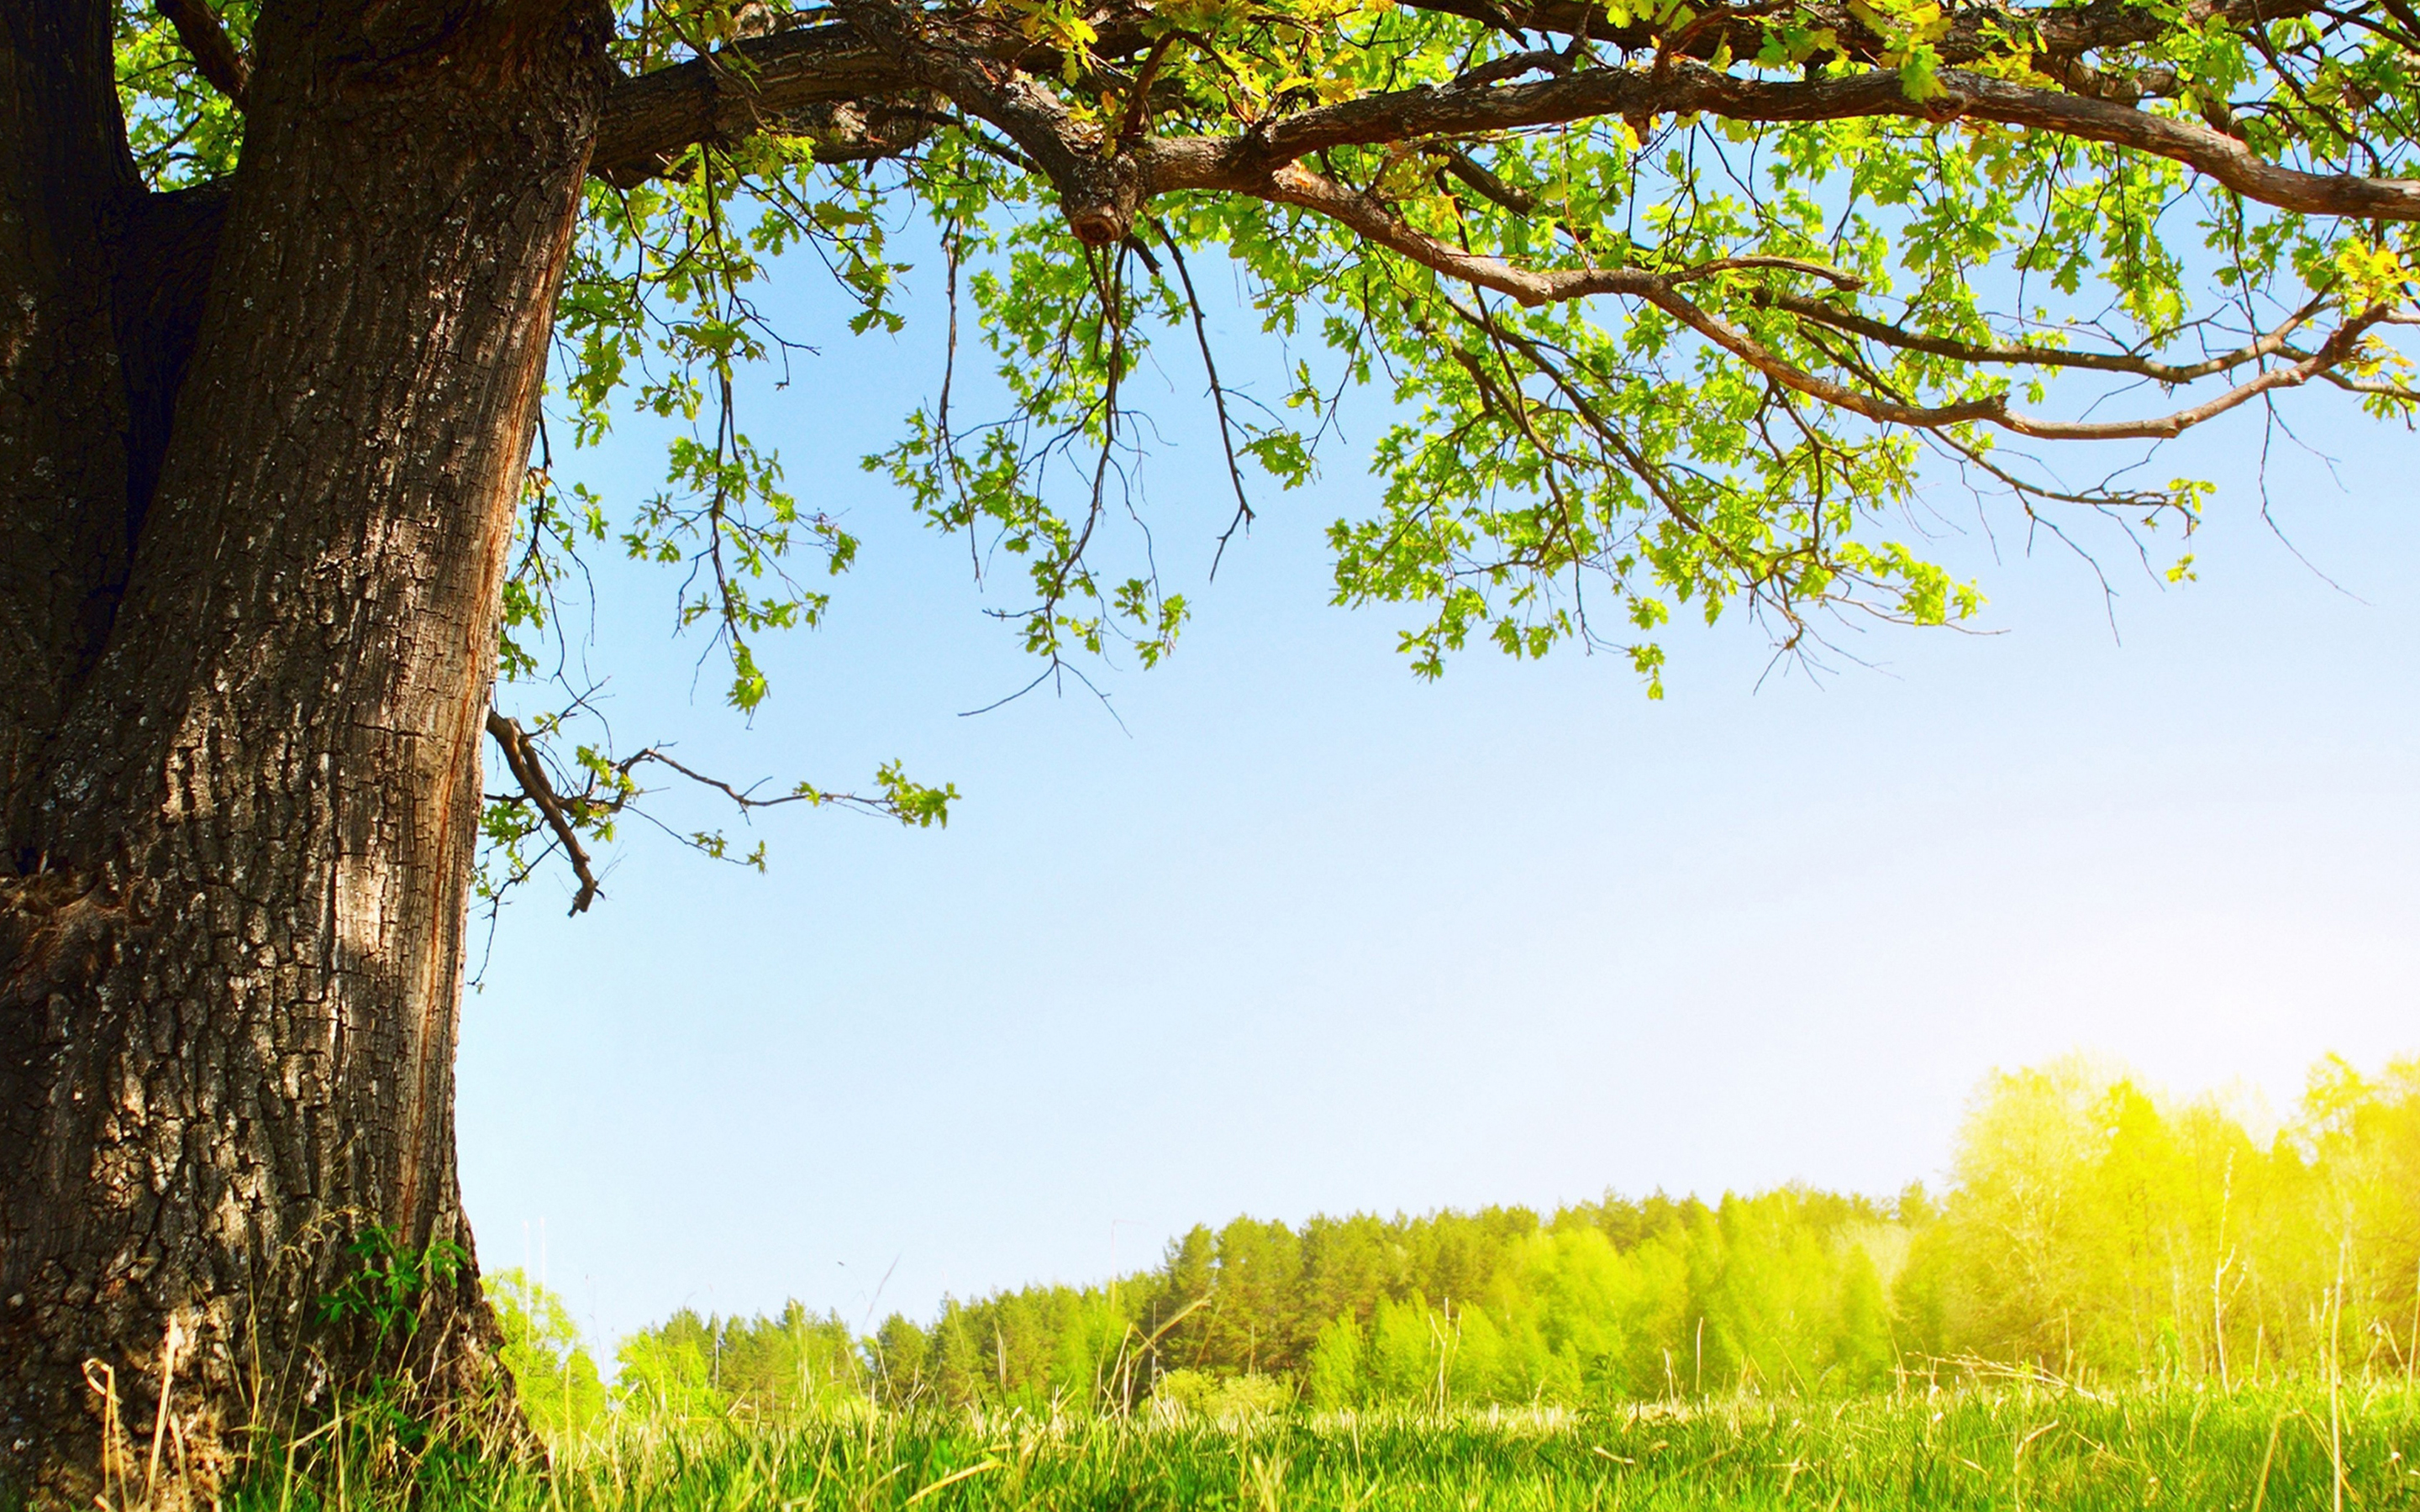 Tree background wallpaper wallpapersafari for Tree wallpaper for walls